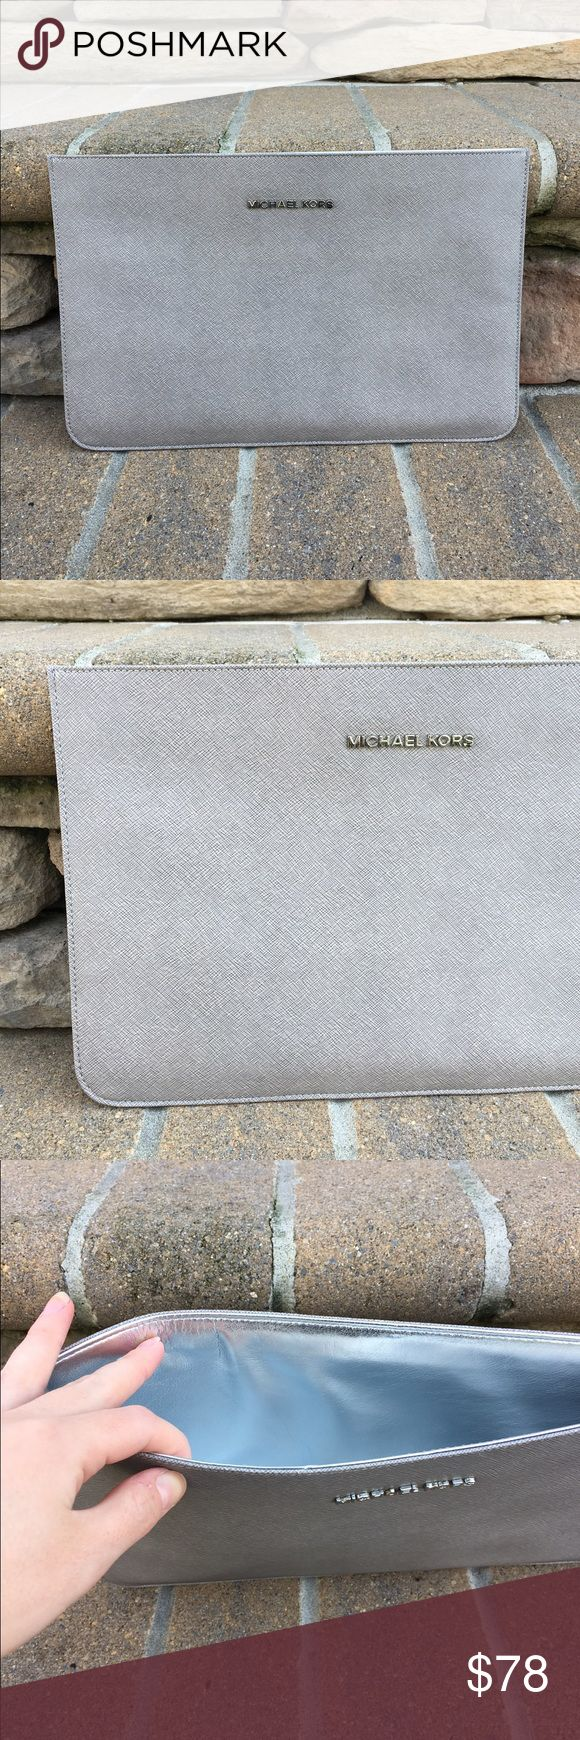 ✨Michael Kors grey clutch NWOT, never been used. Large clutch that is perfect for special events when you want a more sophisticated and mature look. The size is best seen in the last picture, but the dimensions are 12.5x8. The color is a grey and the inside is silver, very classy piece. This clutch will last you forever, it will never go out of style! Michael Kors Bags Clutches & Wristlets